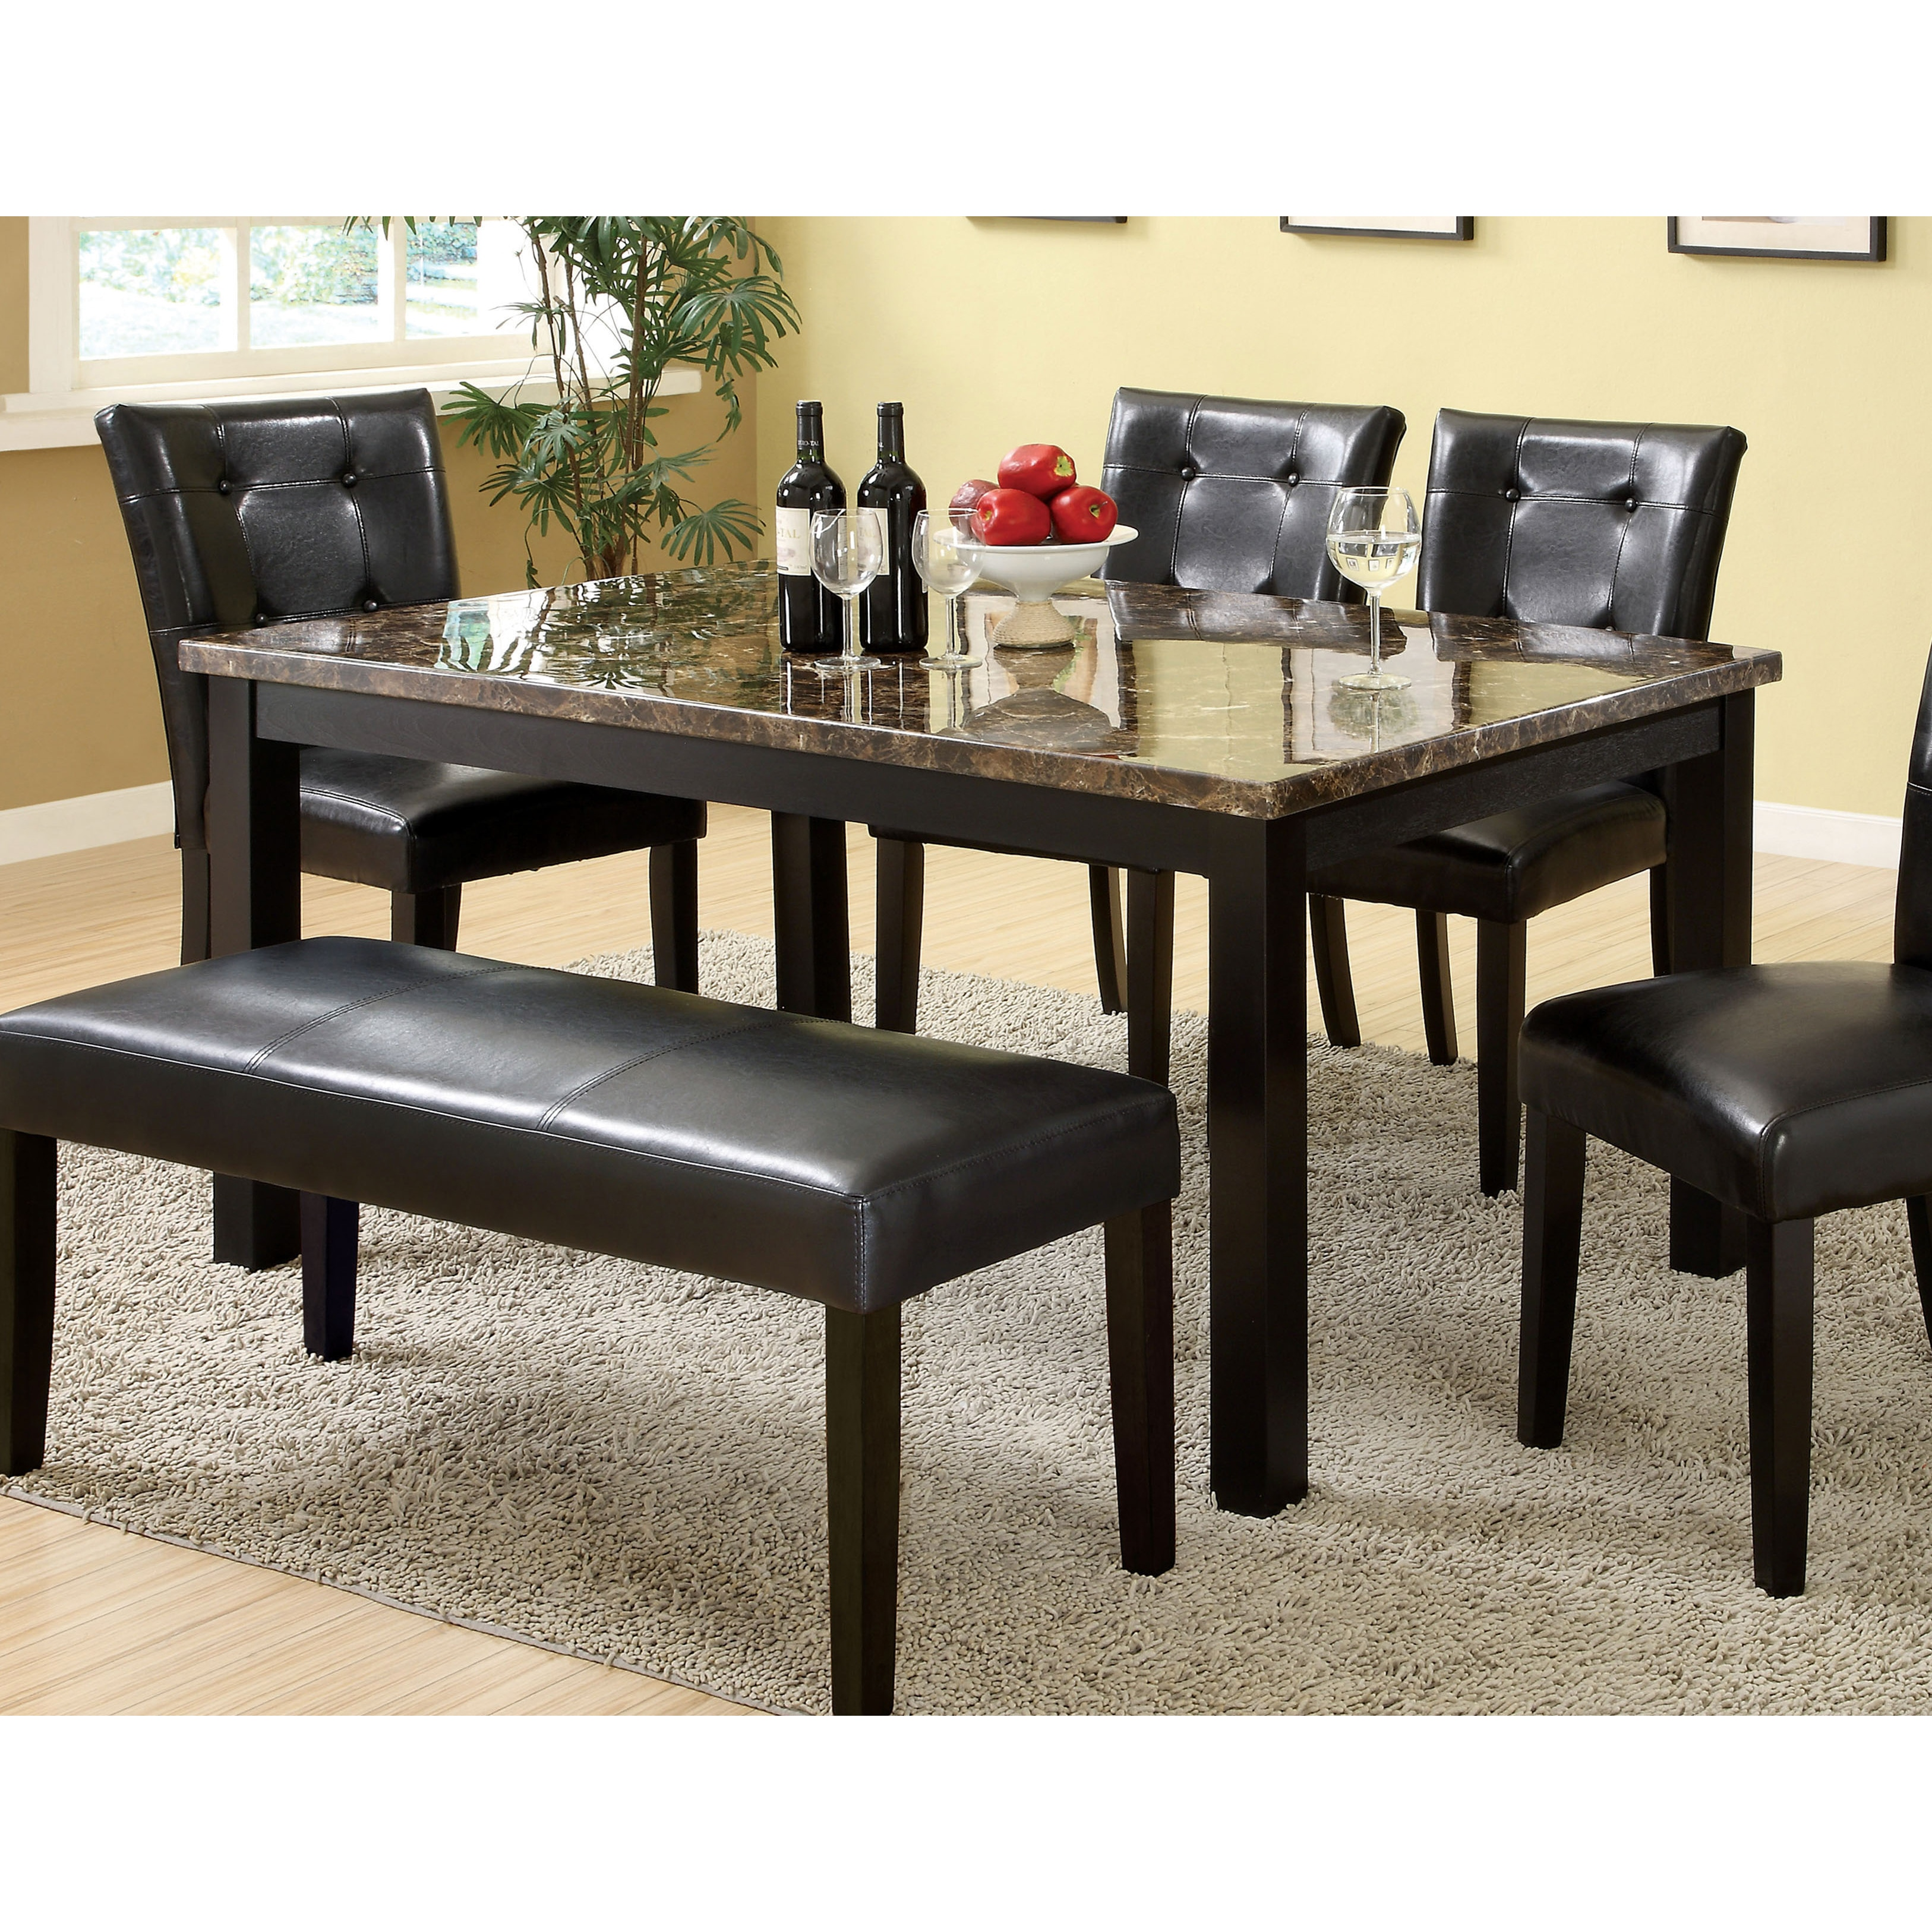 60 inch kitchen table undermount sinks at lowes furniture of america perthien contemporary black faux marble top dining walmart com